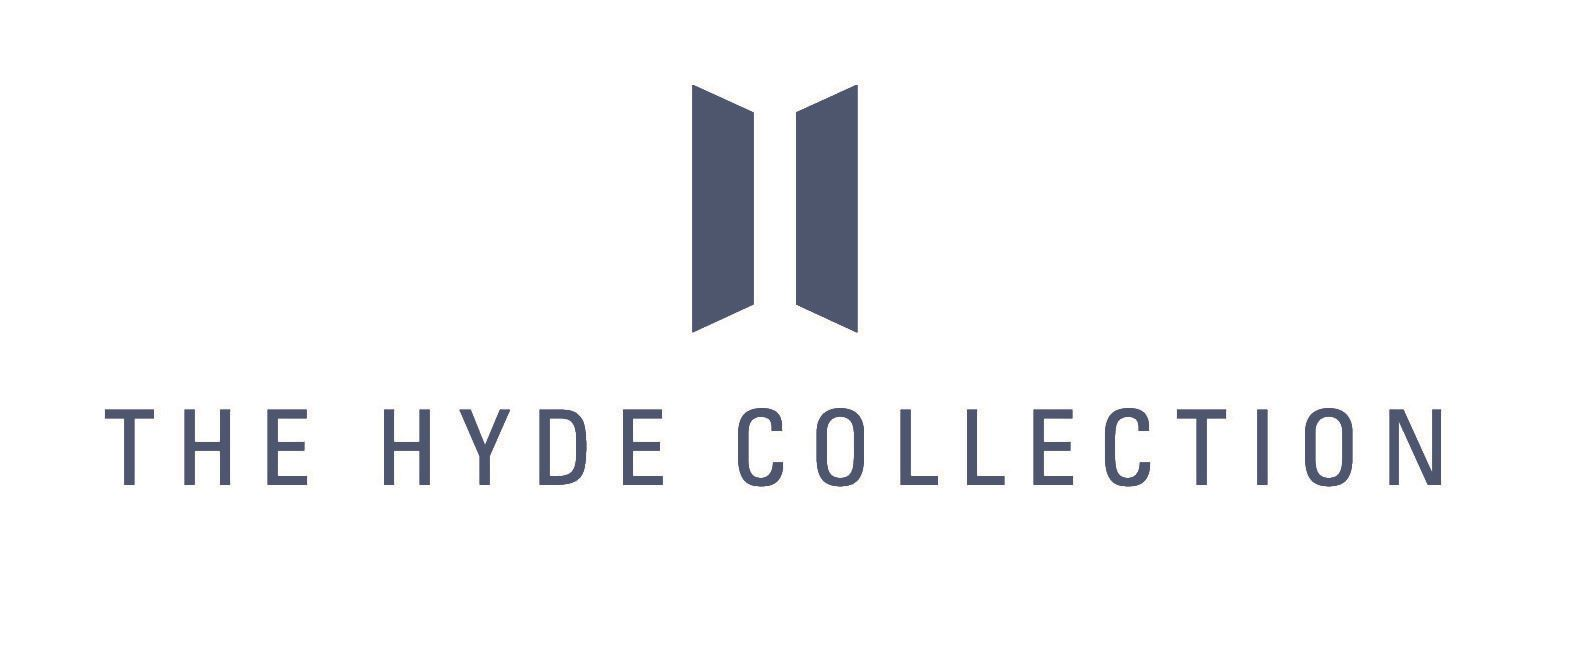 The Hyde Collection